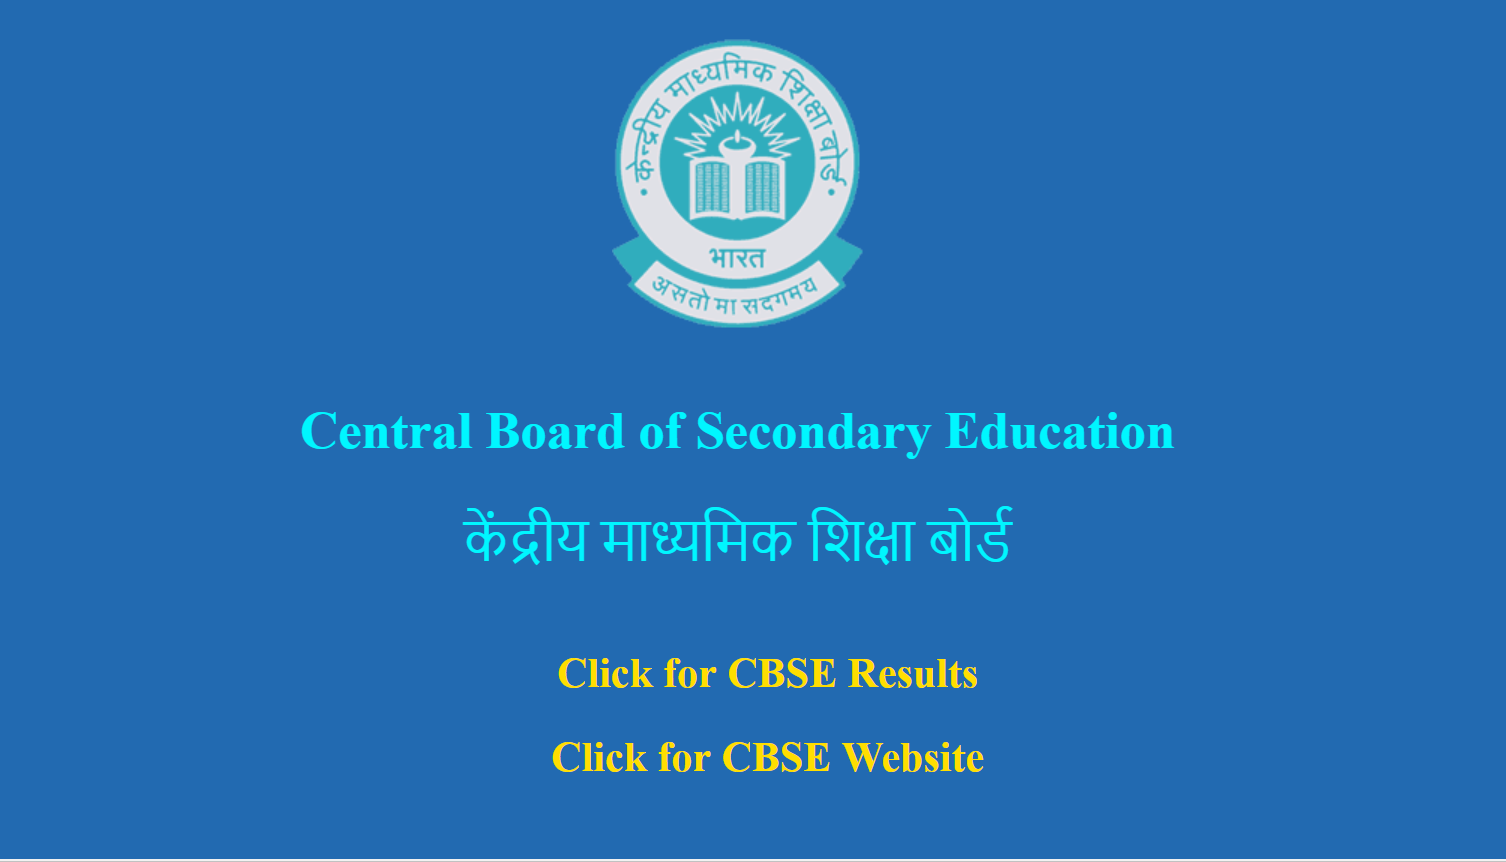 cbse 10th board results